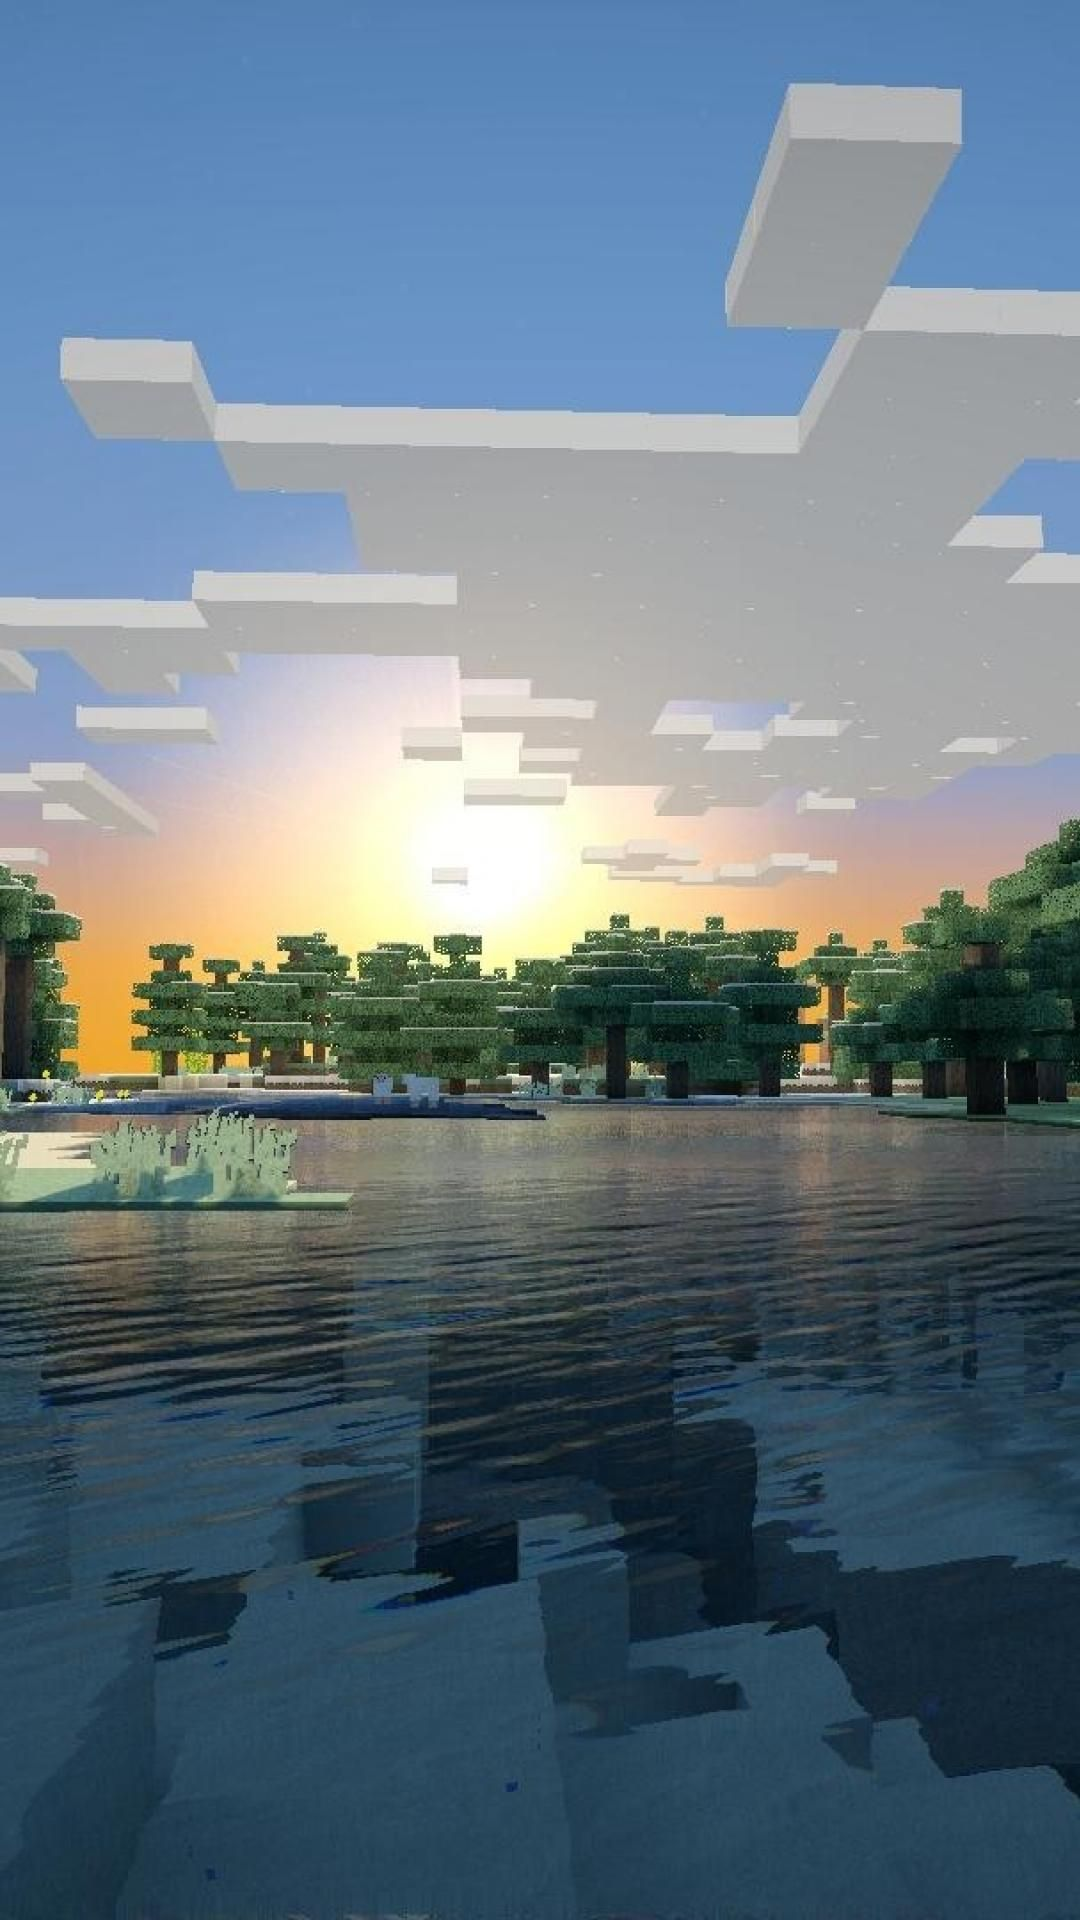 Minecraft Wallpapers High Definition Hupages Download Iphone Wallpapers Minecraft Wallpaper Minecraft Pictures Minecraft Posters